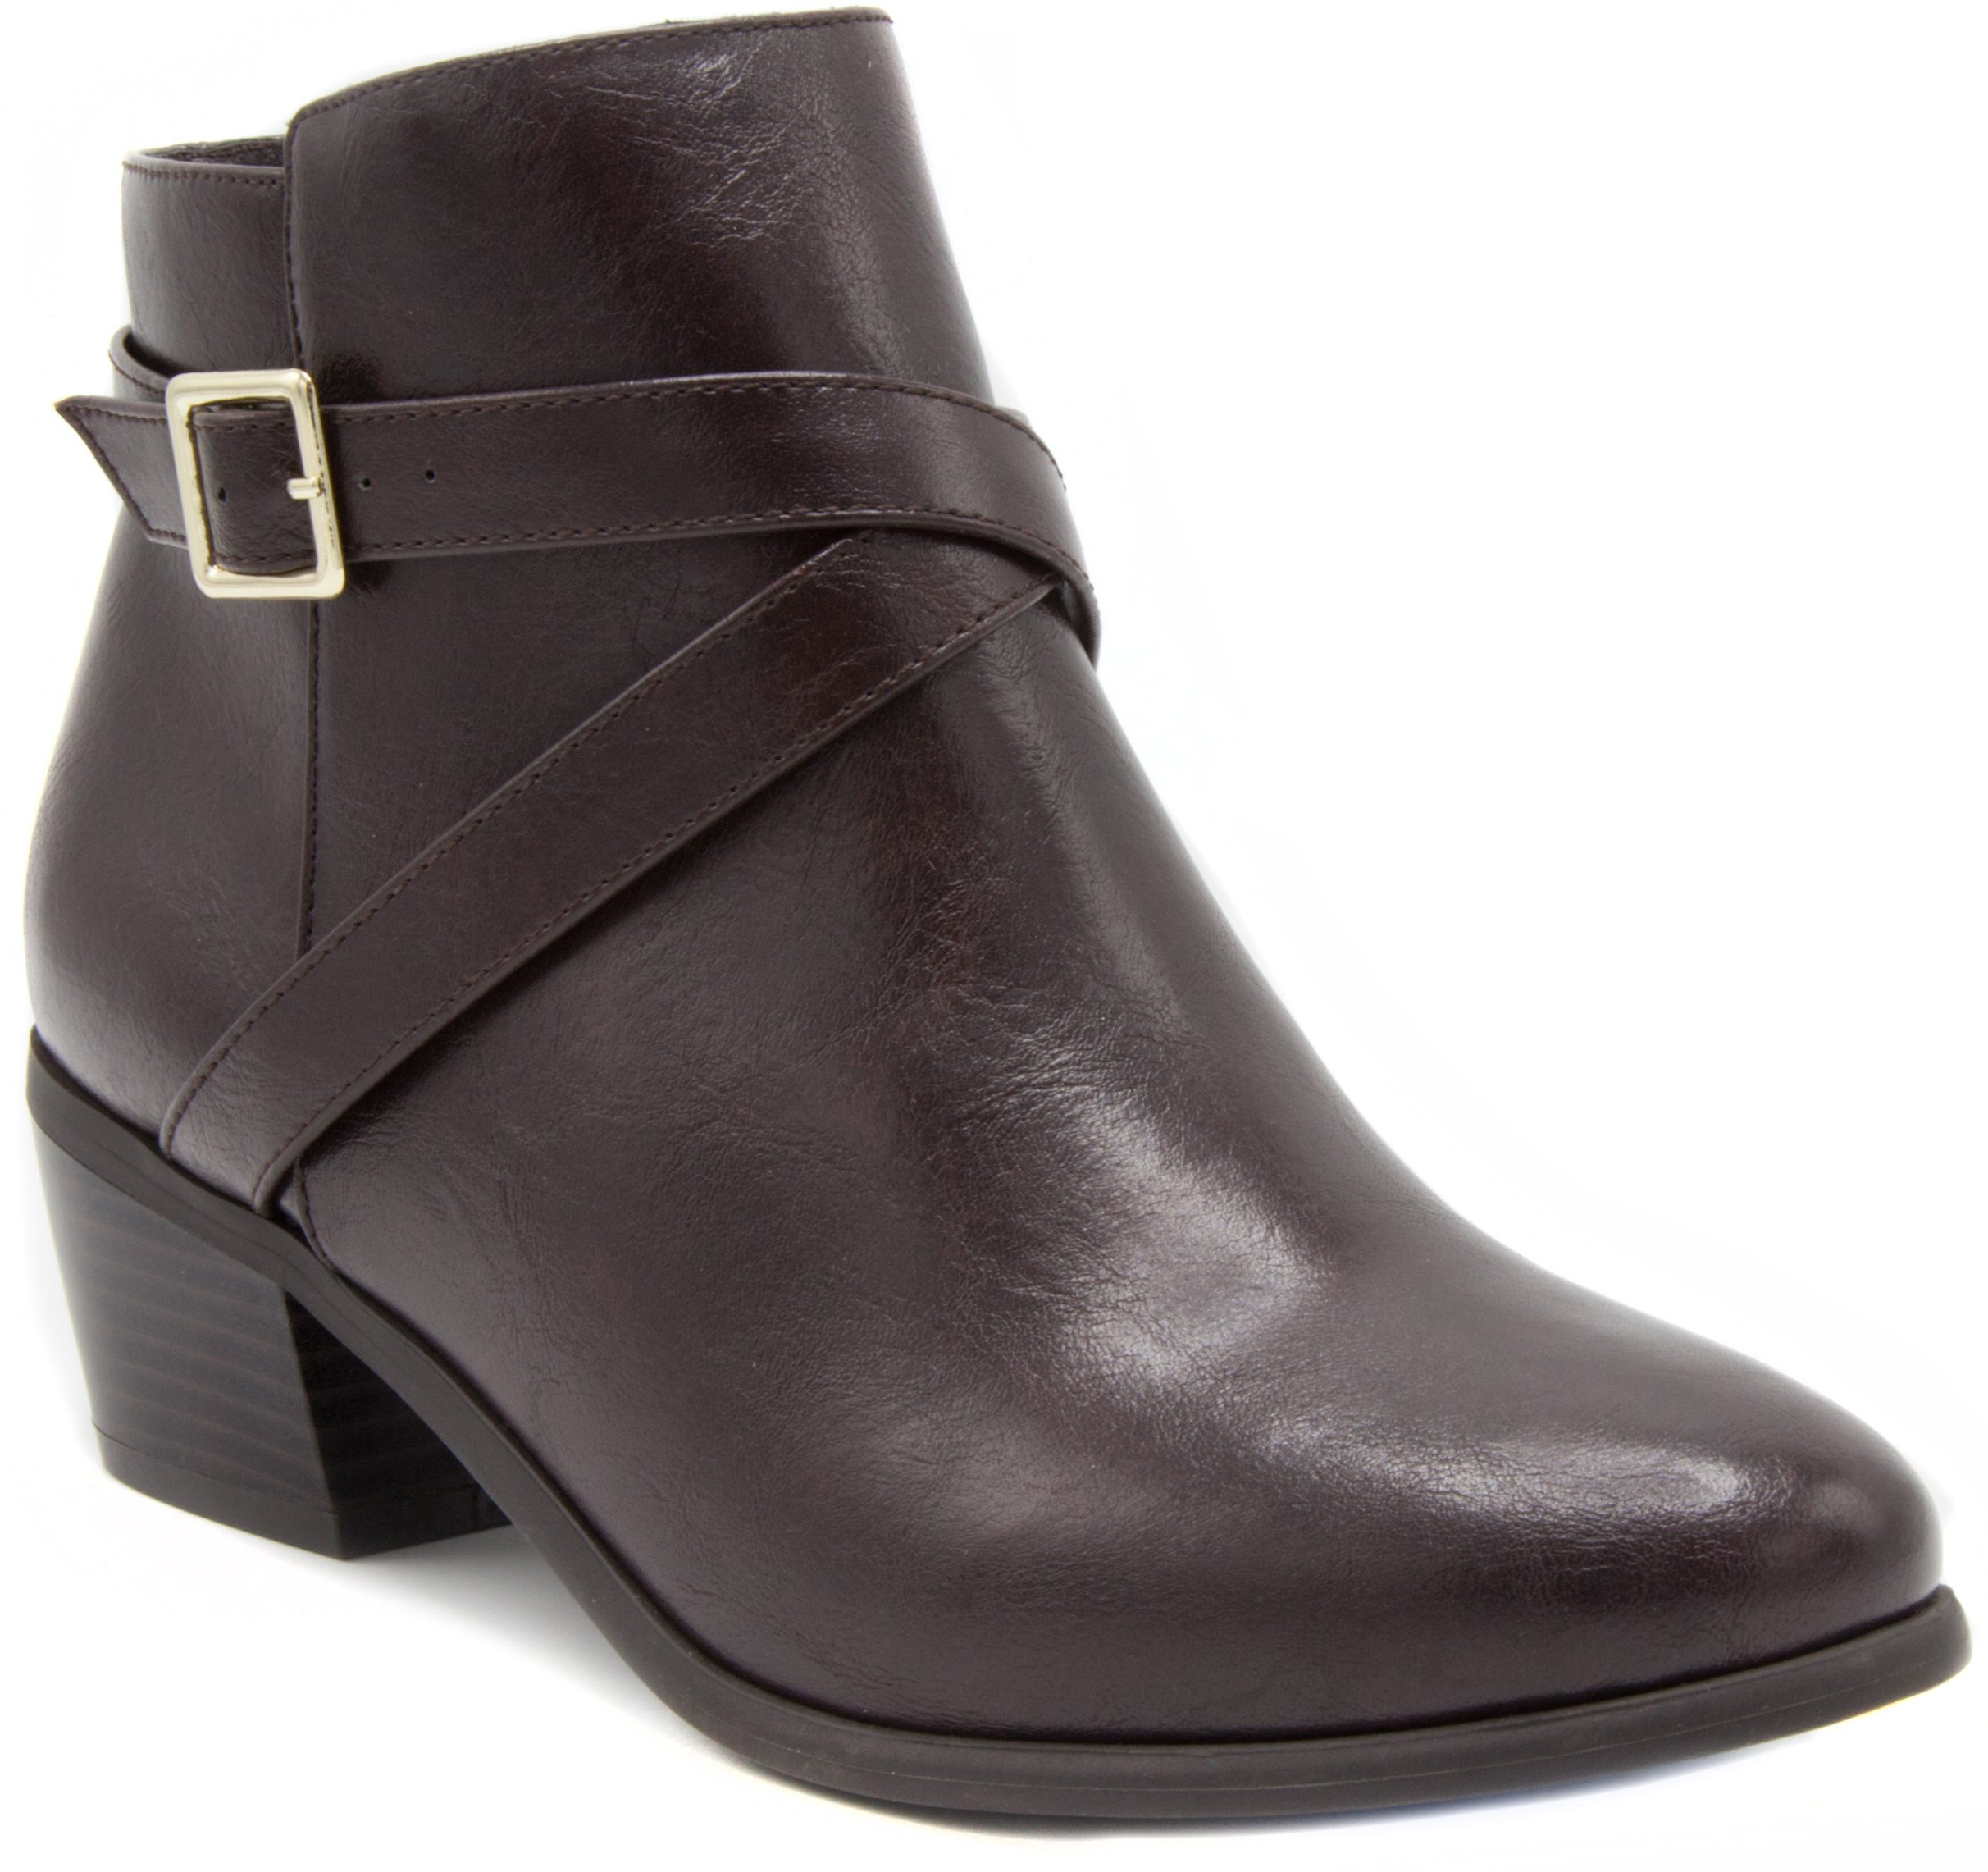 London Fog Womens Halifax Heeled Ankle Booties Brown 6.5 by London Fog